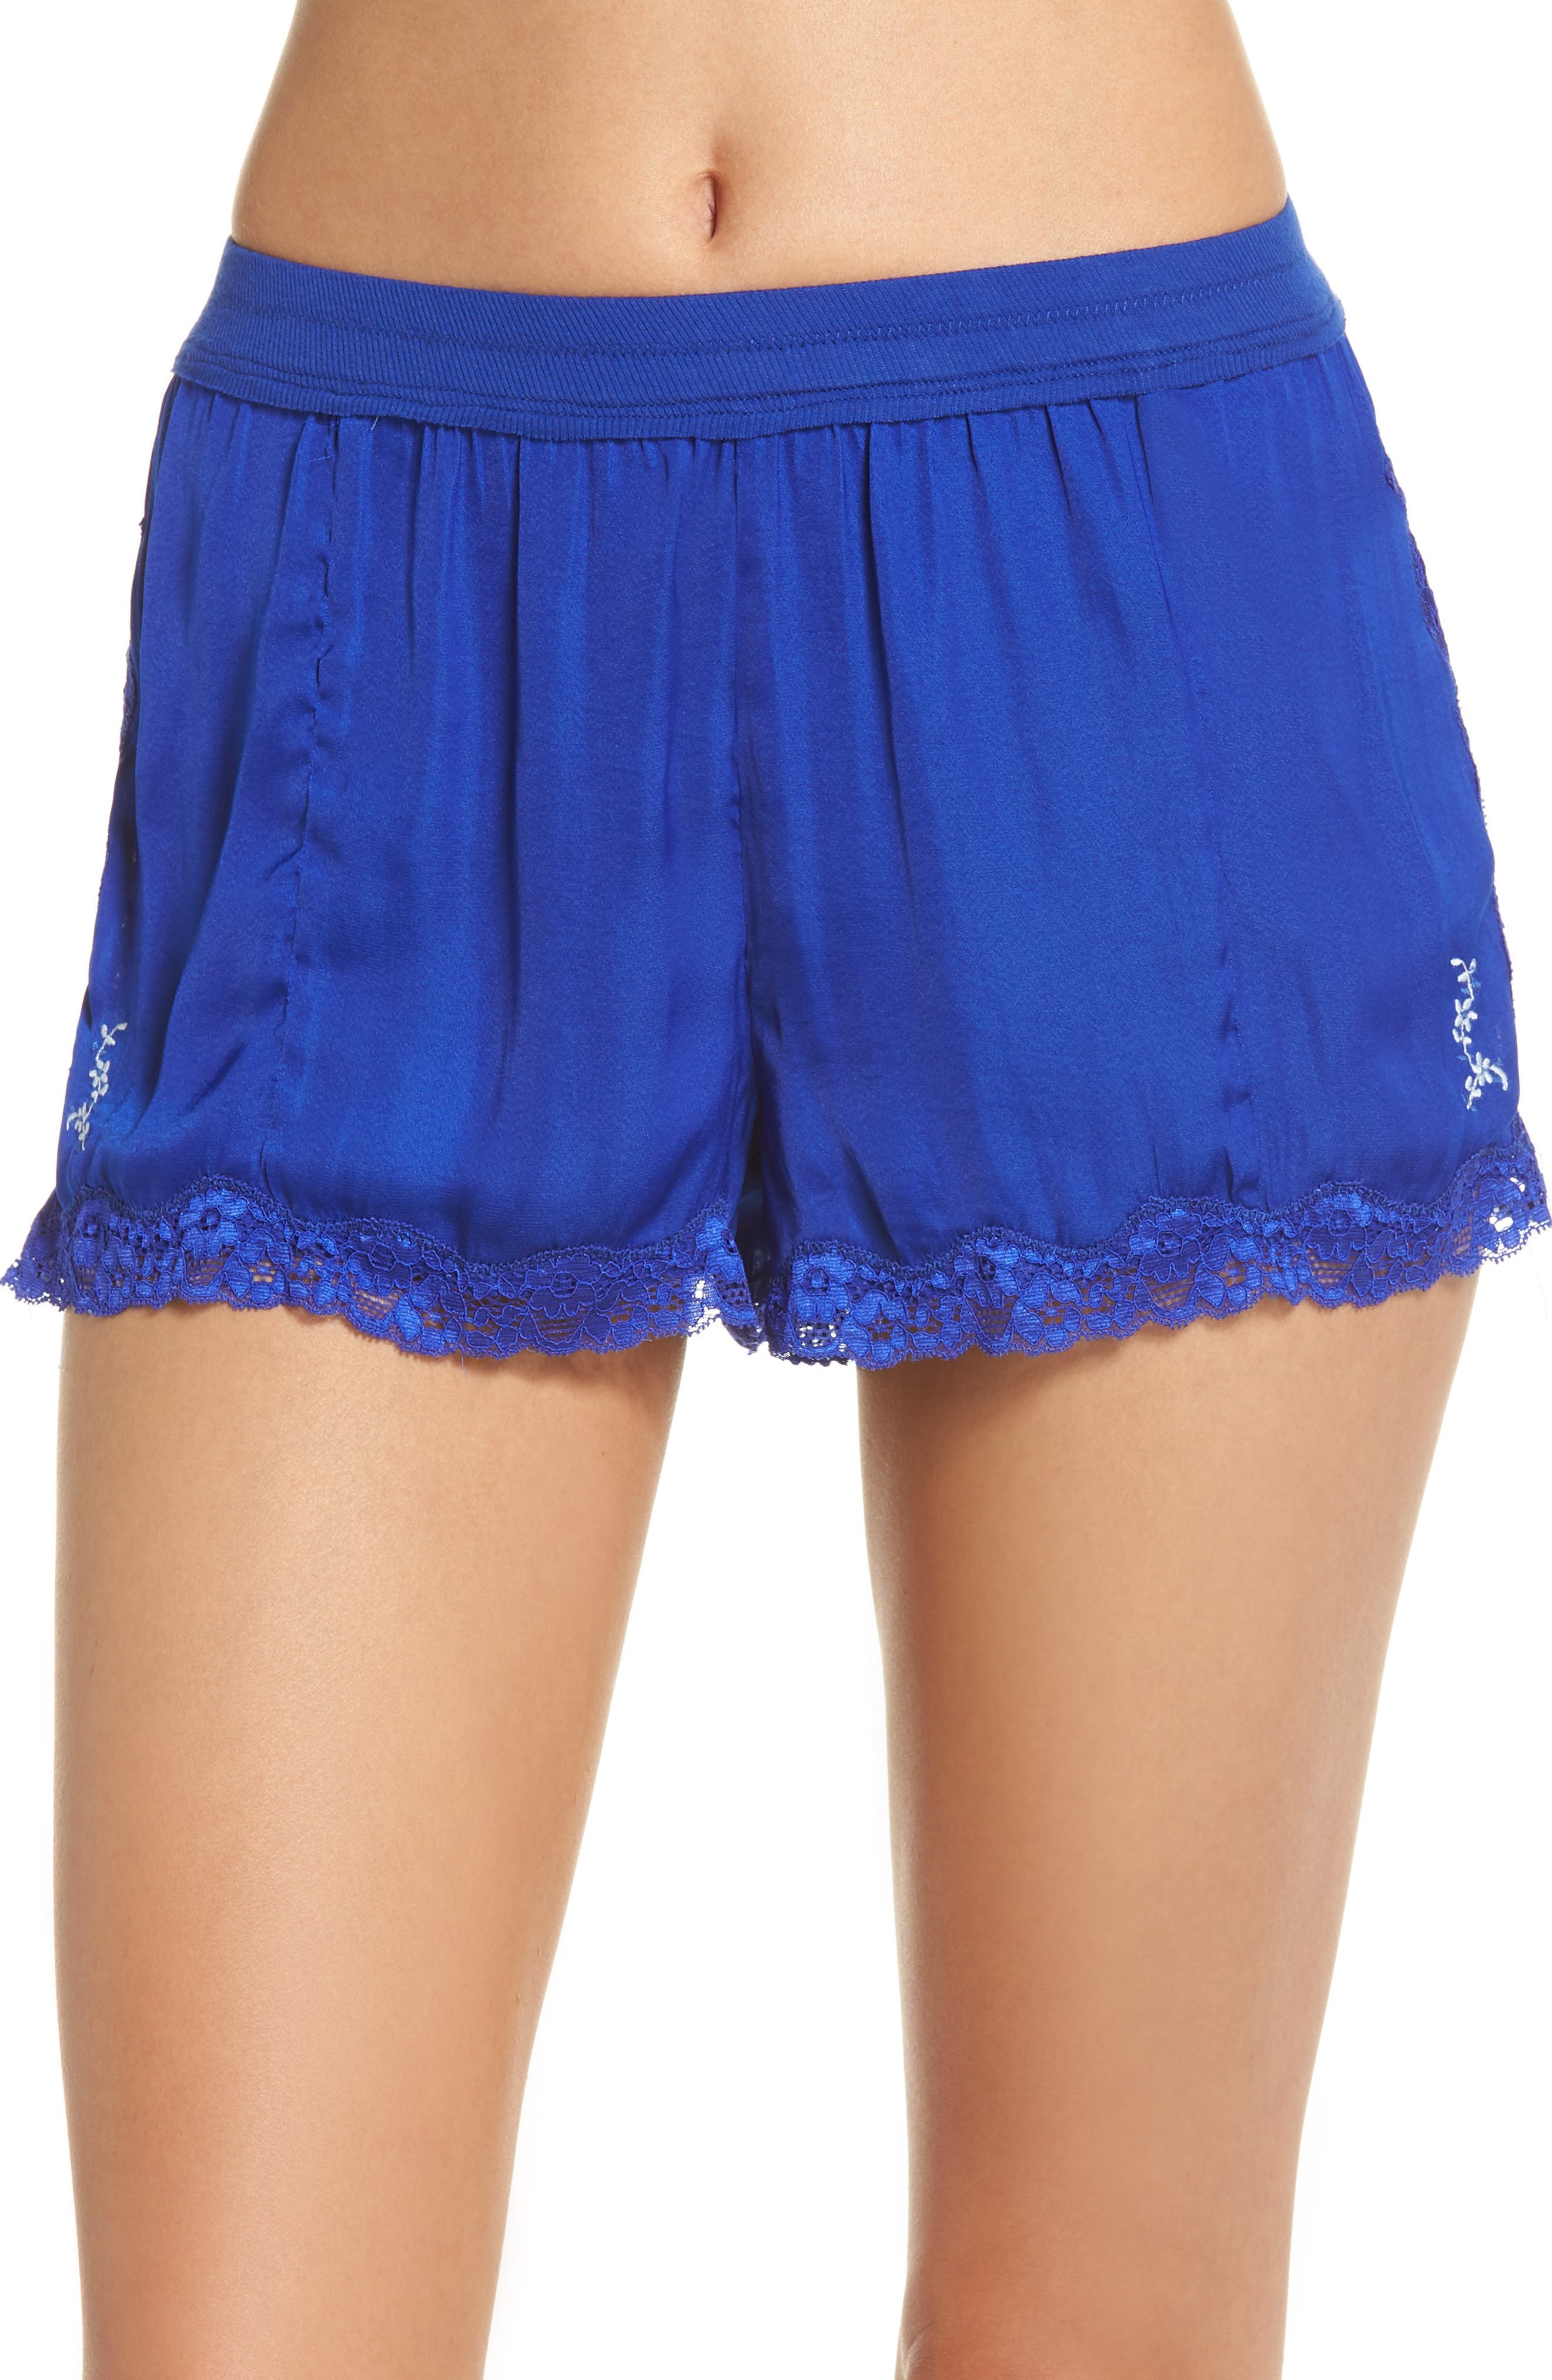 Intimately FP High Side Shorts,                             Main thumbnail 1, color,                             BLUE